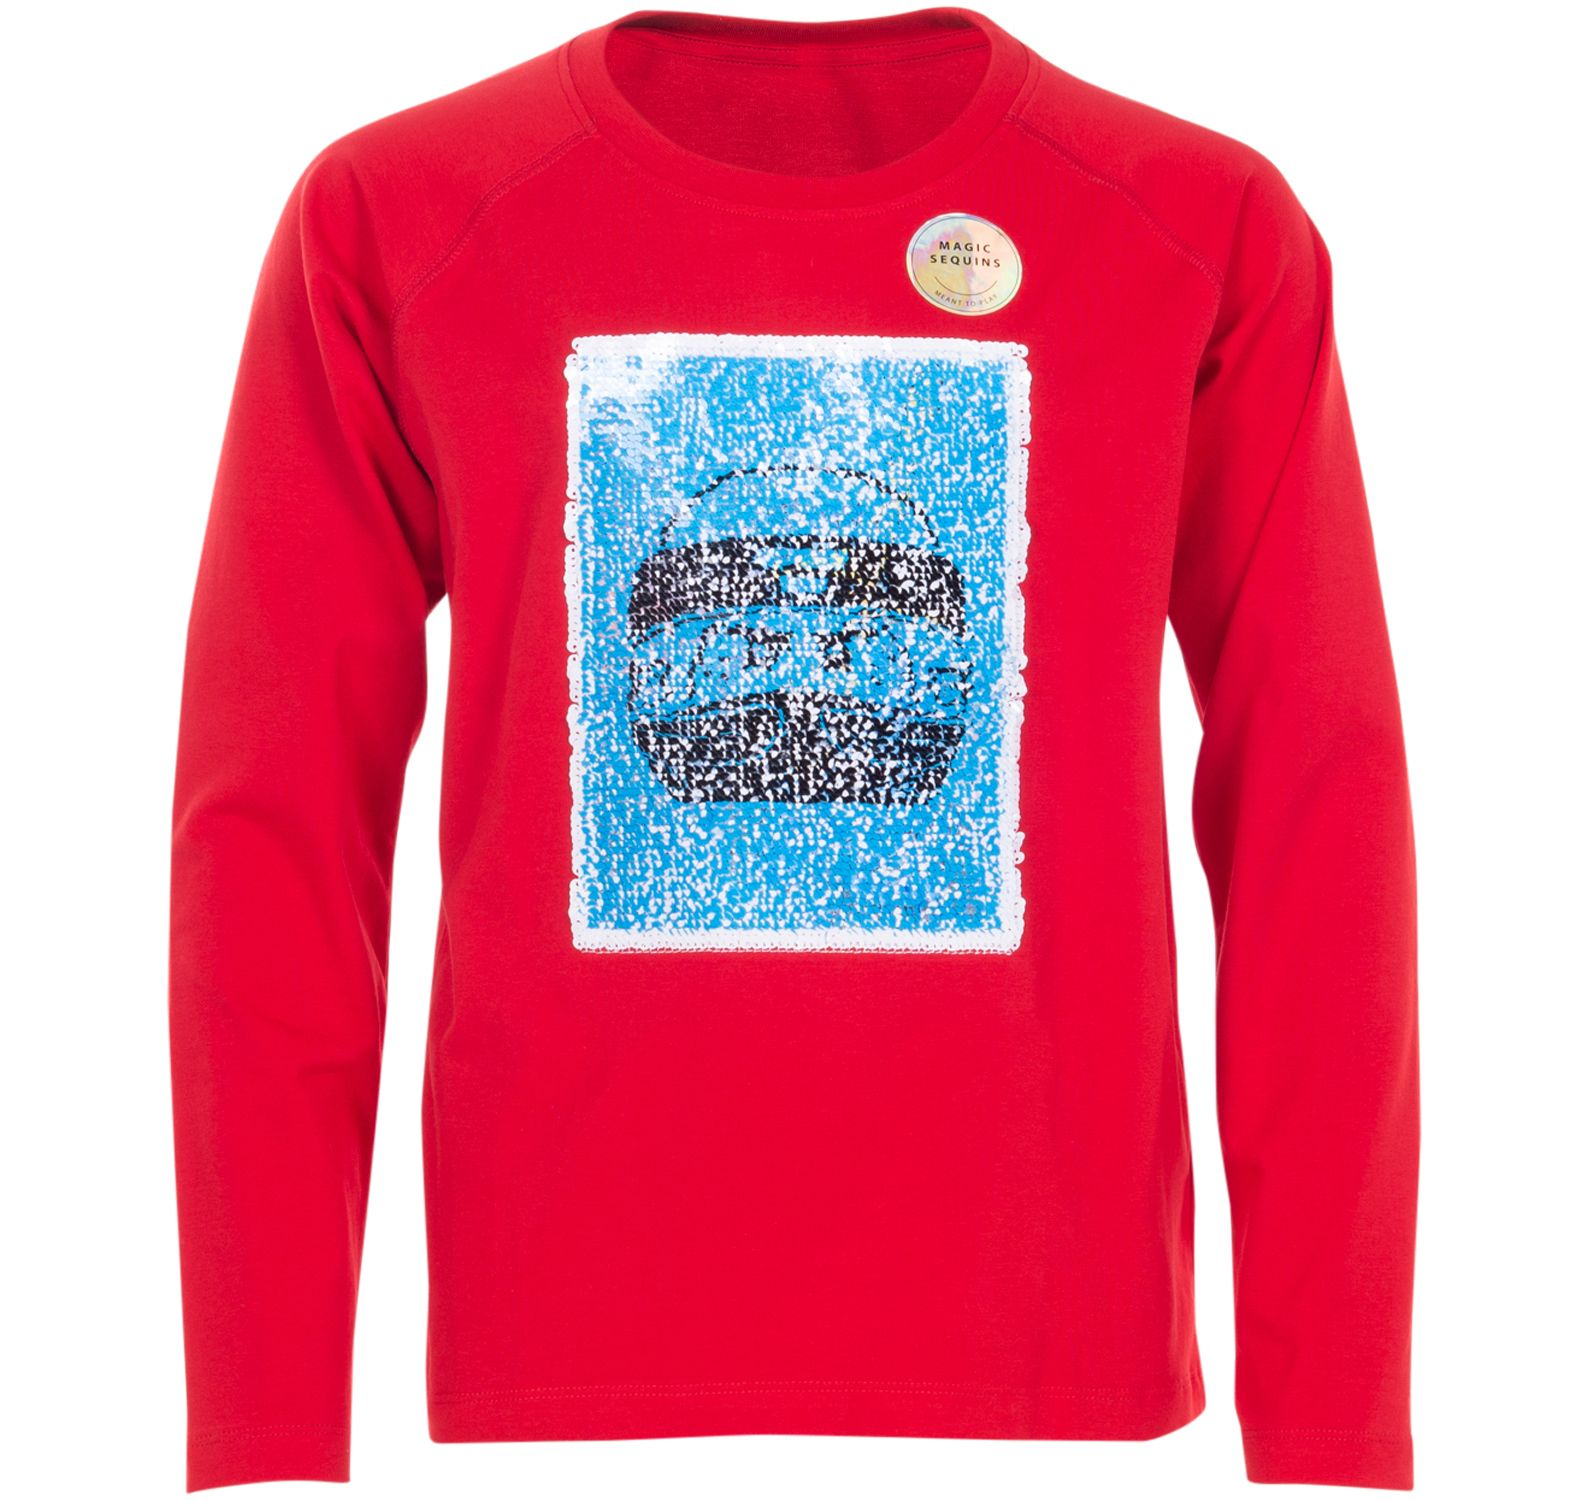 Lwtiger 652 - T-Shirt L/S, Bright Red, 104,  Lego